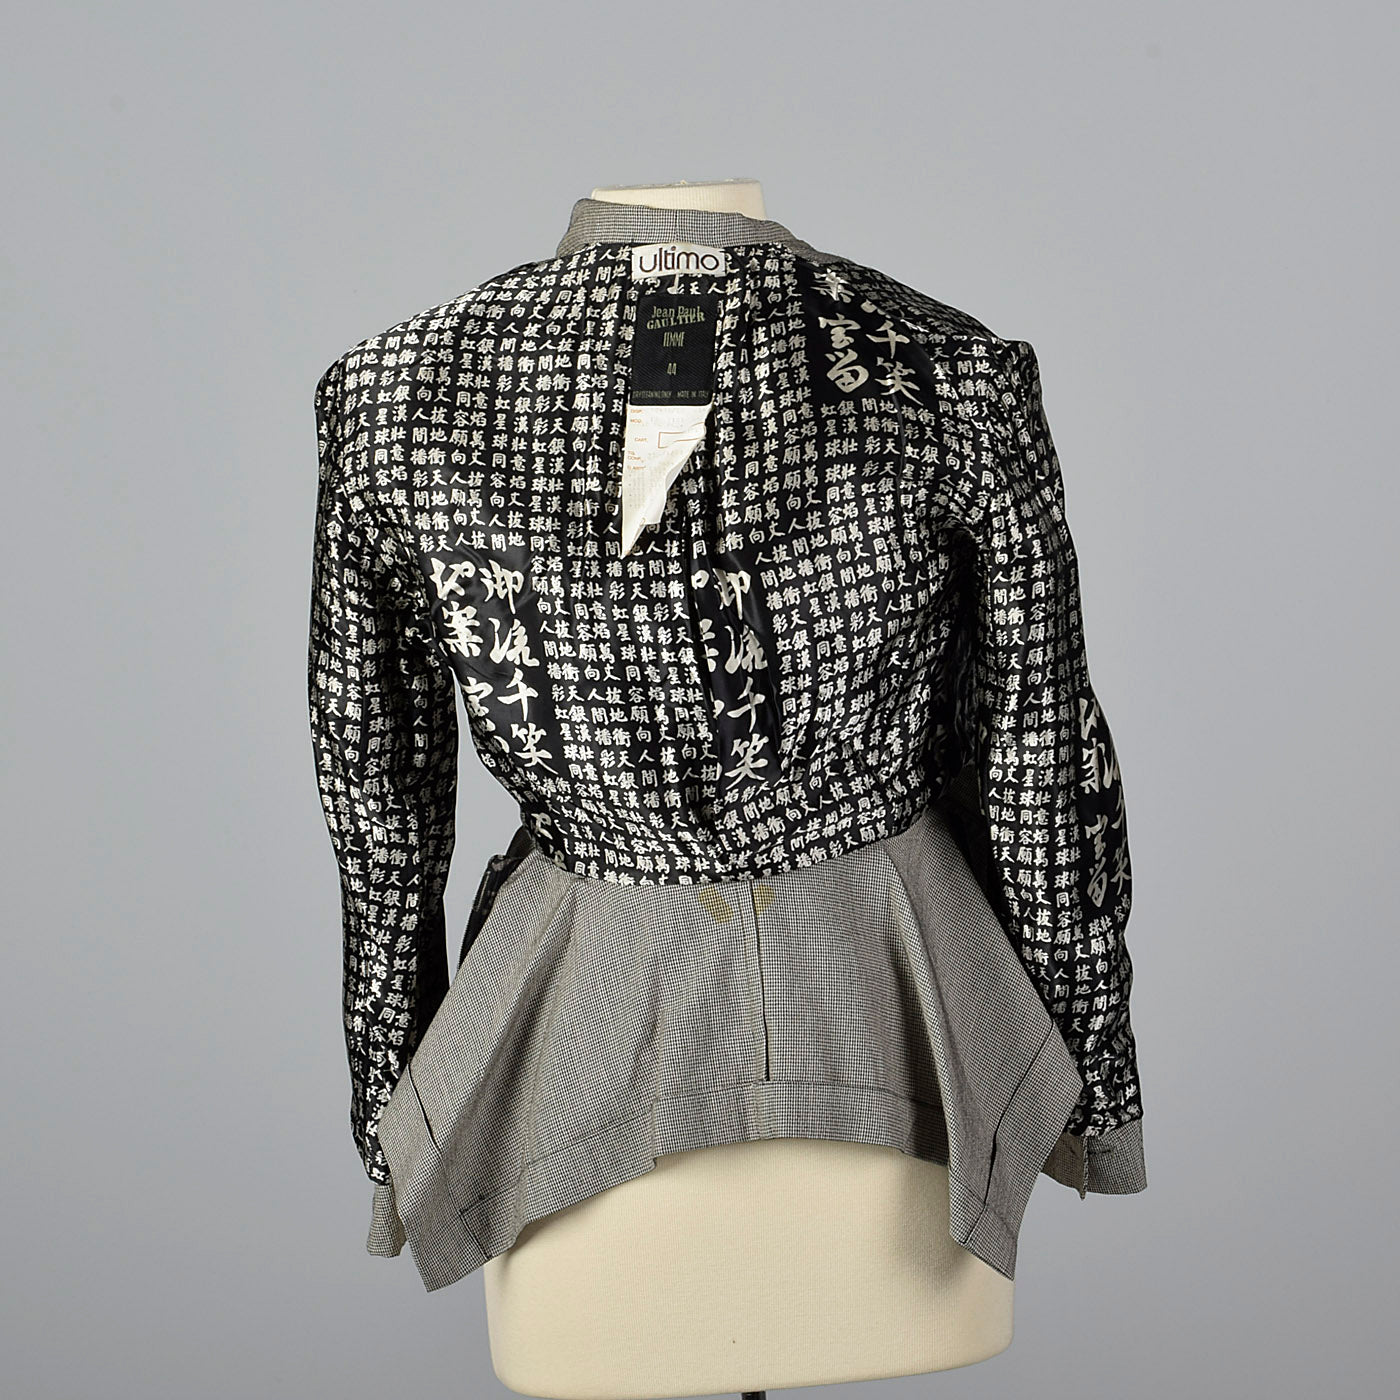 1990s Jean Paul Gaultier Black & White Asymmetric Jacket